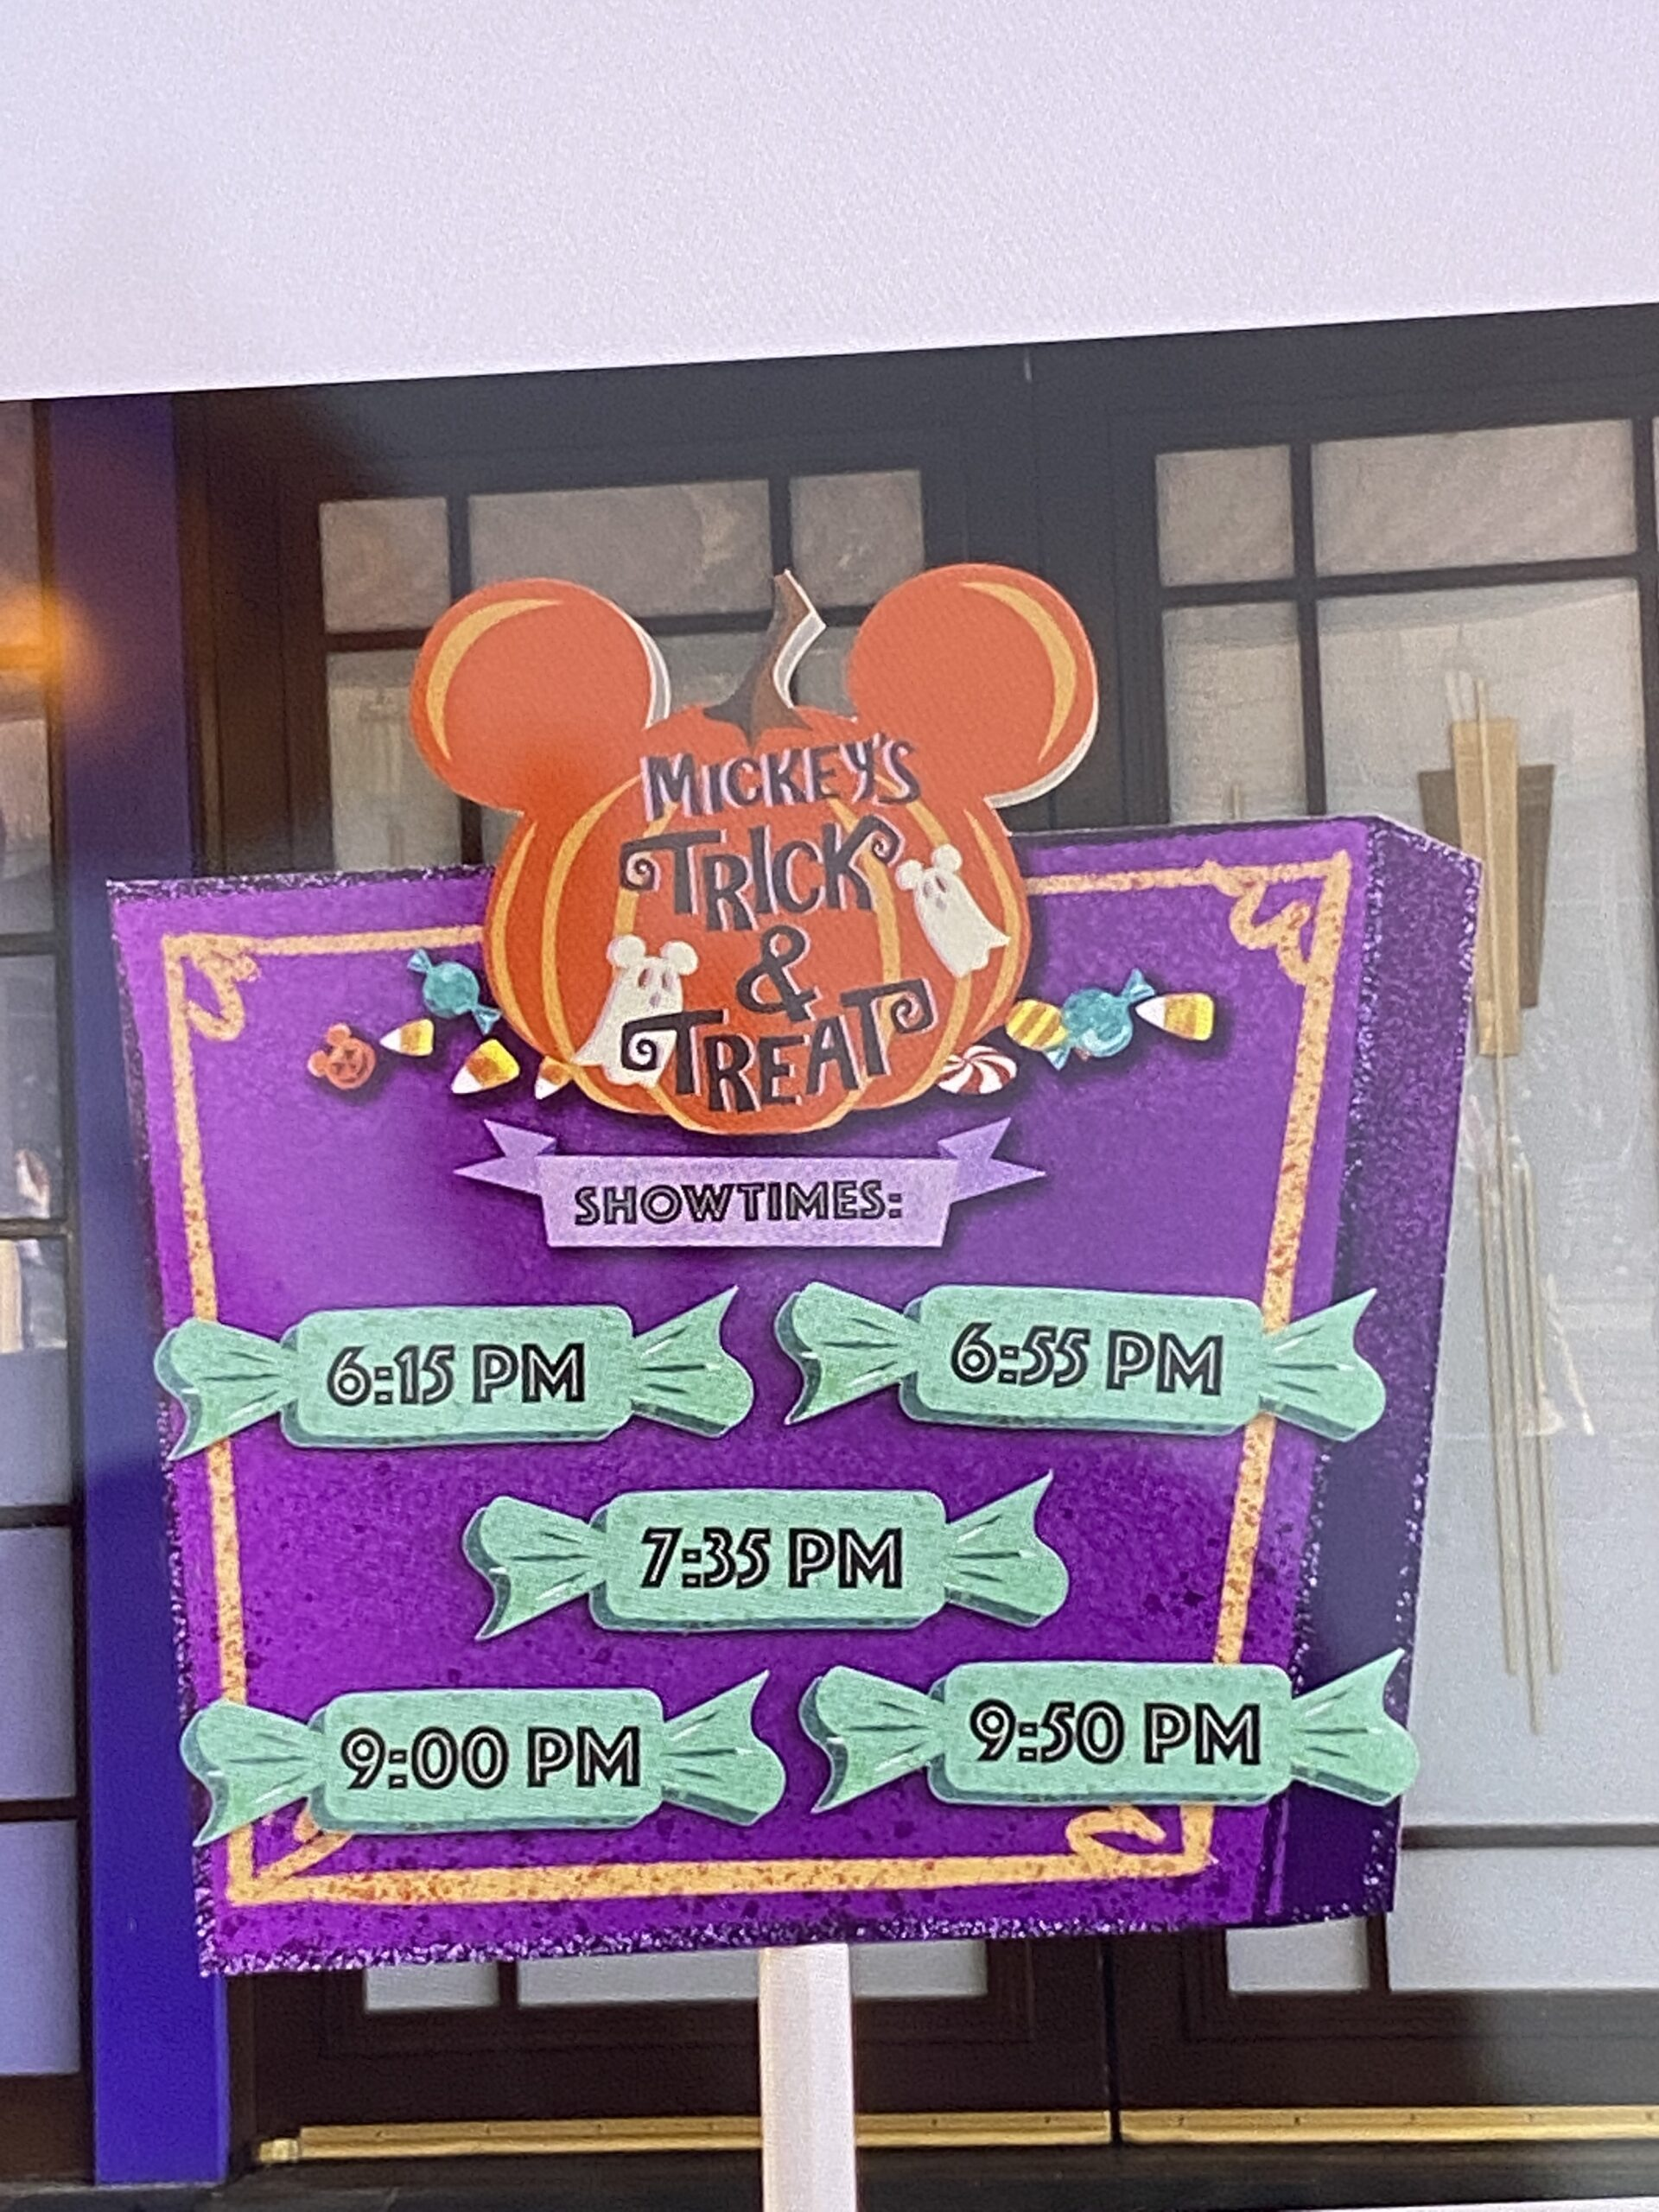 showtimes for Mickey's Trick and Treat Show